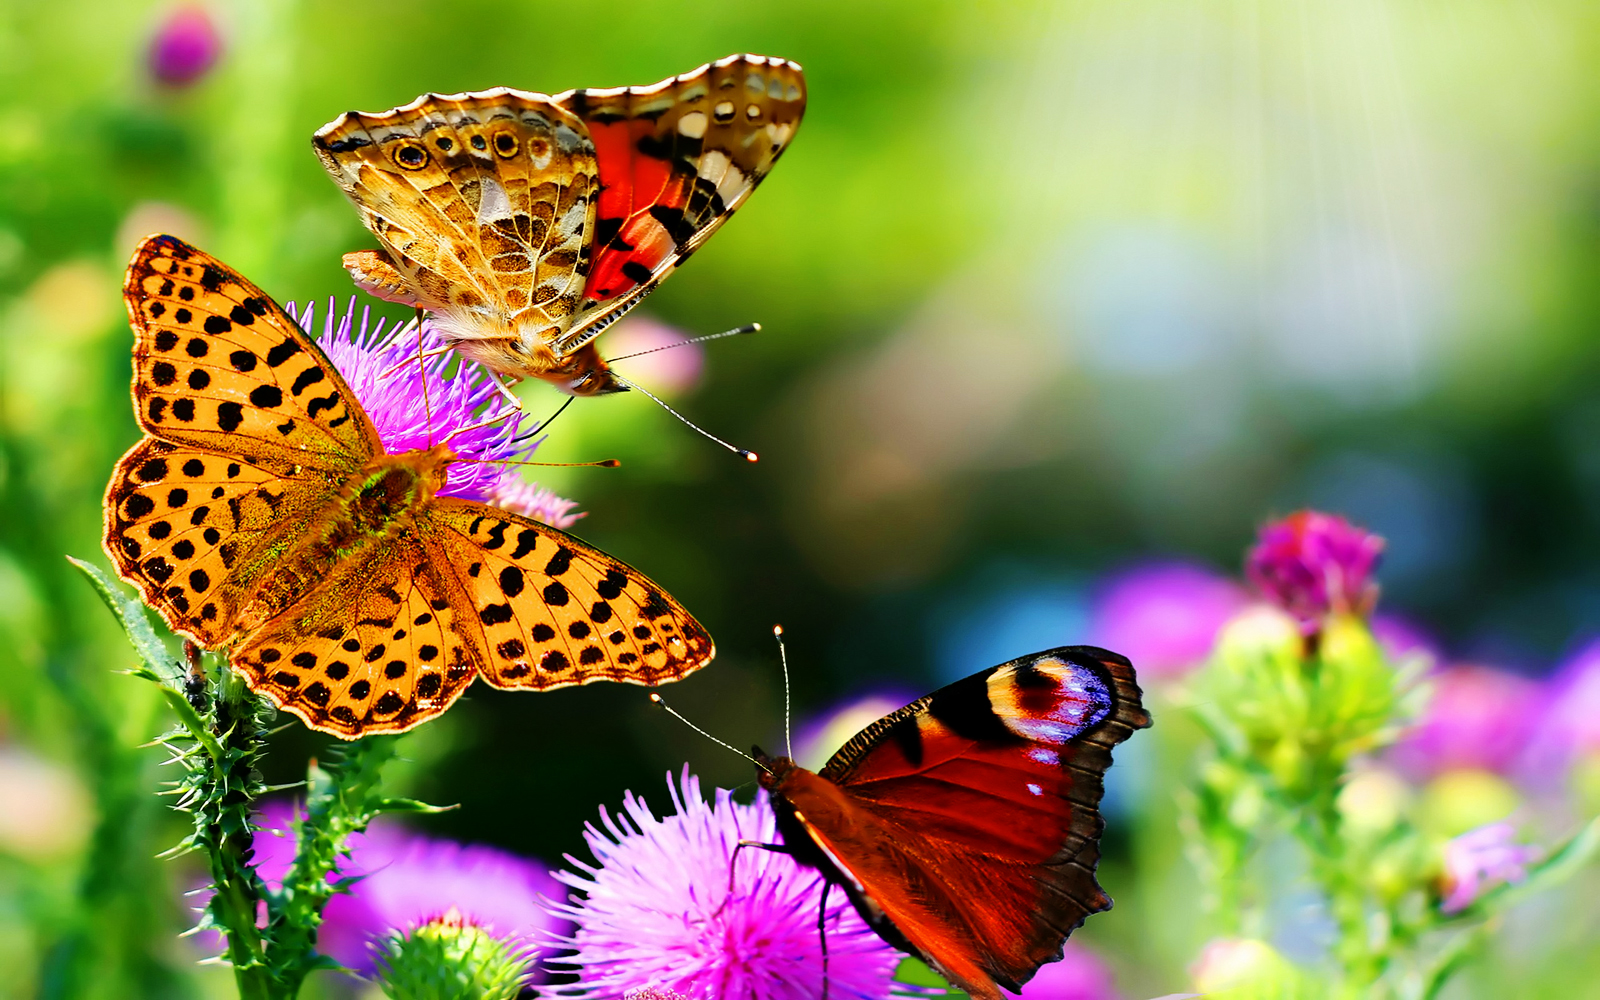 http://1.bp.blogspot.com/-XWsDNlWsyP8/TwmH_INnGbI/AAAAAAAAAPk/Vb0UZFGQnCw/s1600/Butterfly_on_Purple_Flowers_HD_Nature_Wallpaper-Vvallpaper.Net.jpg